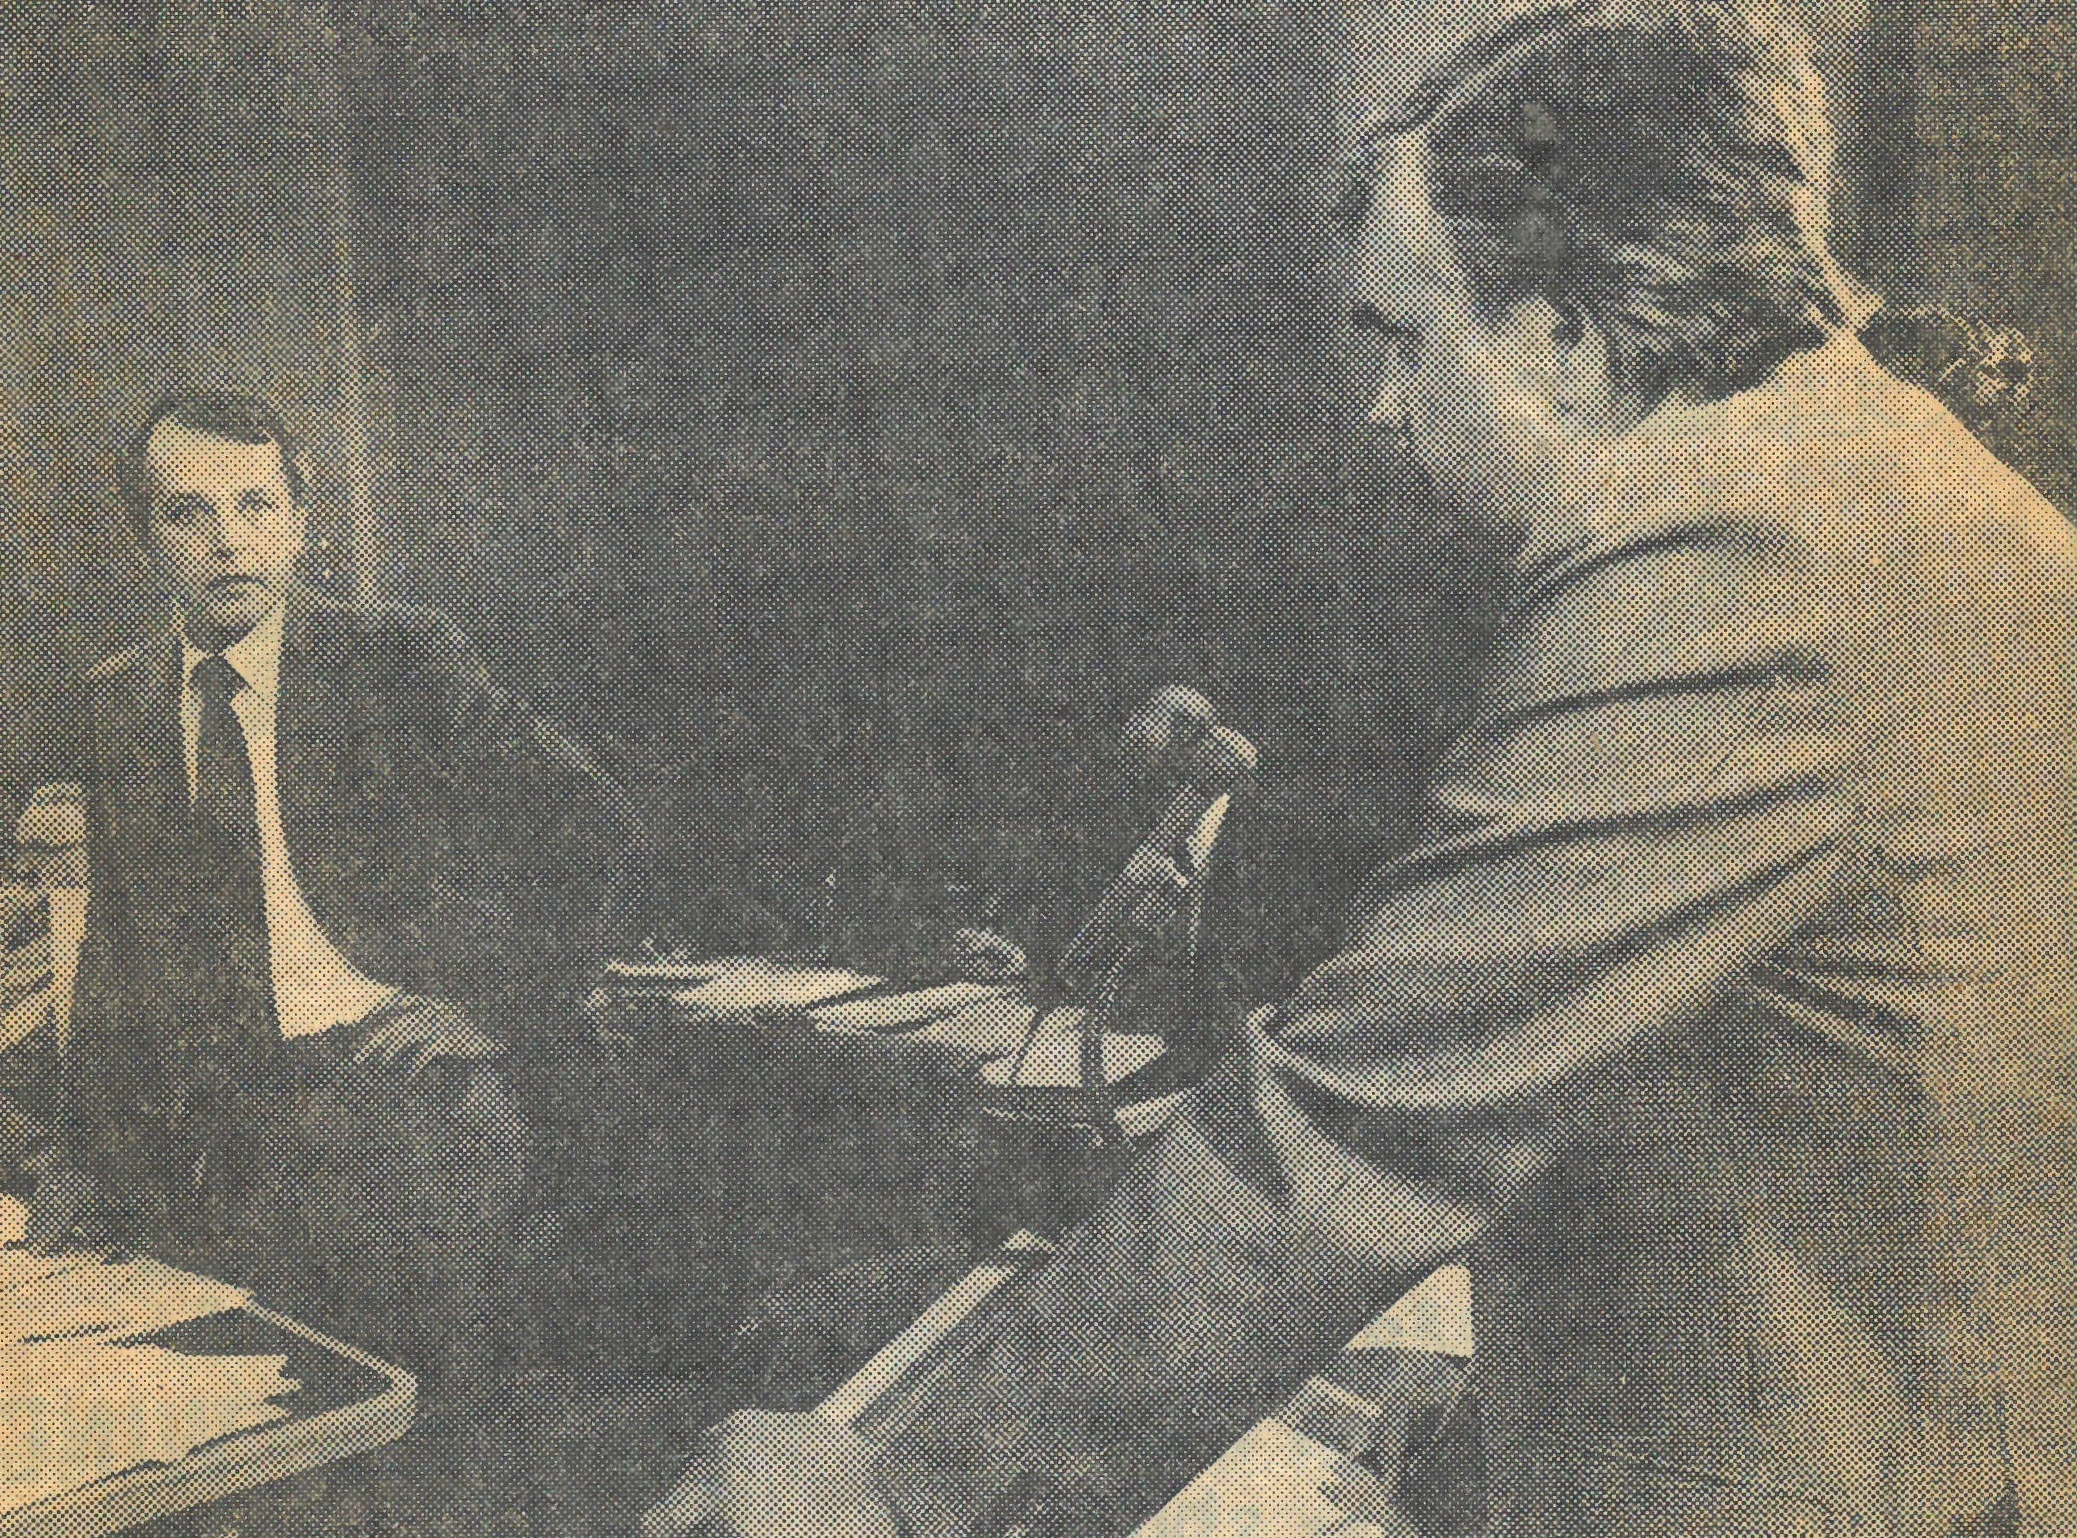 City councillor Peter Zakreski, left, stands off with Capitol theatre preservationist Don Kerr, right, in a heated summer meeting in 1979 at City Hall. (Saskatoon Public Library Local History Room; Copyright: Saskatoon Star-Phoenix)